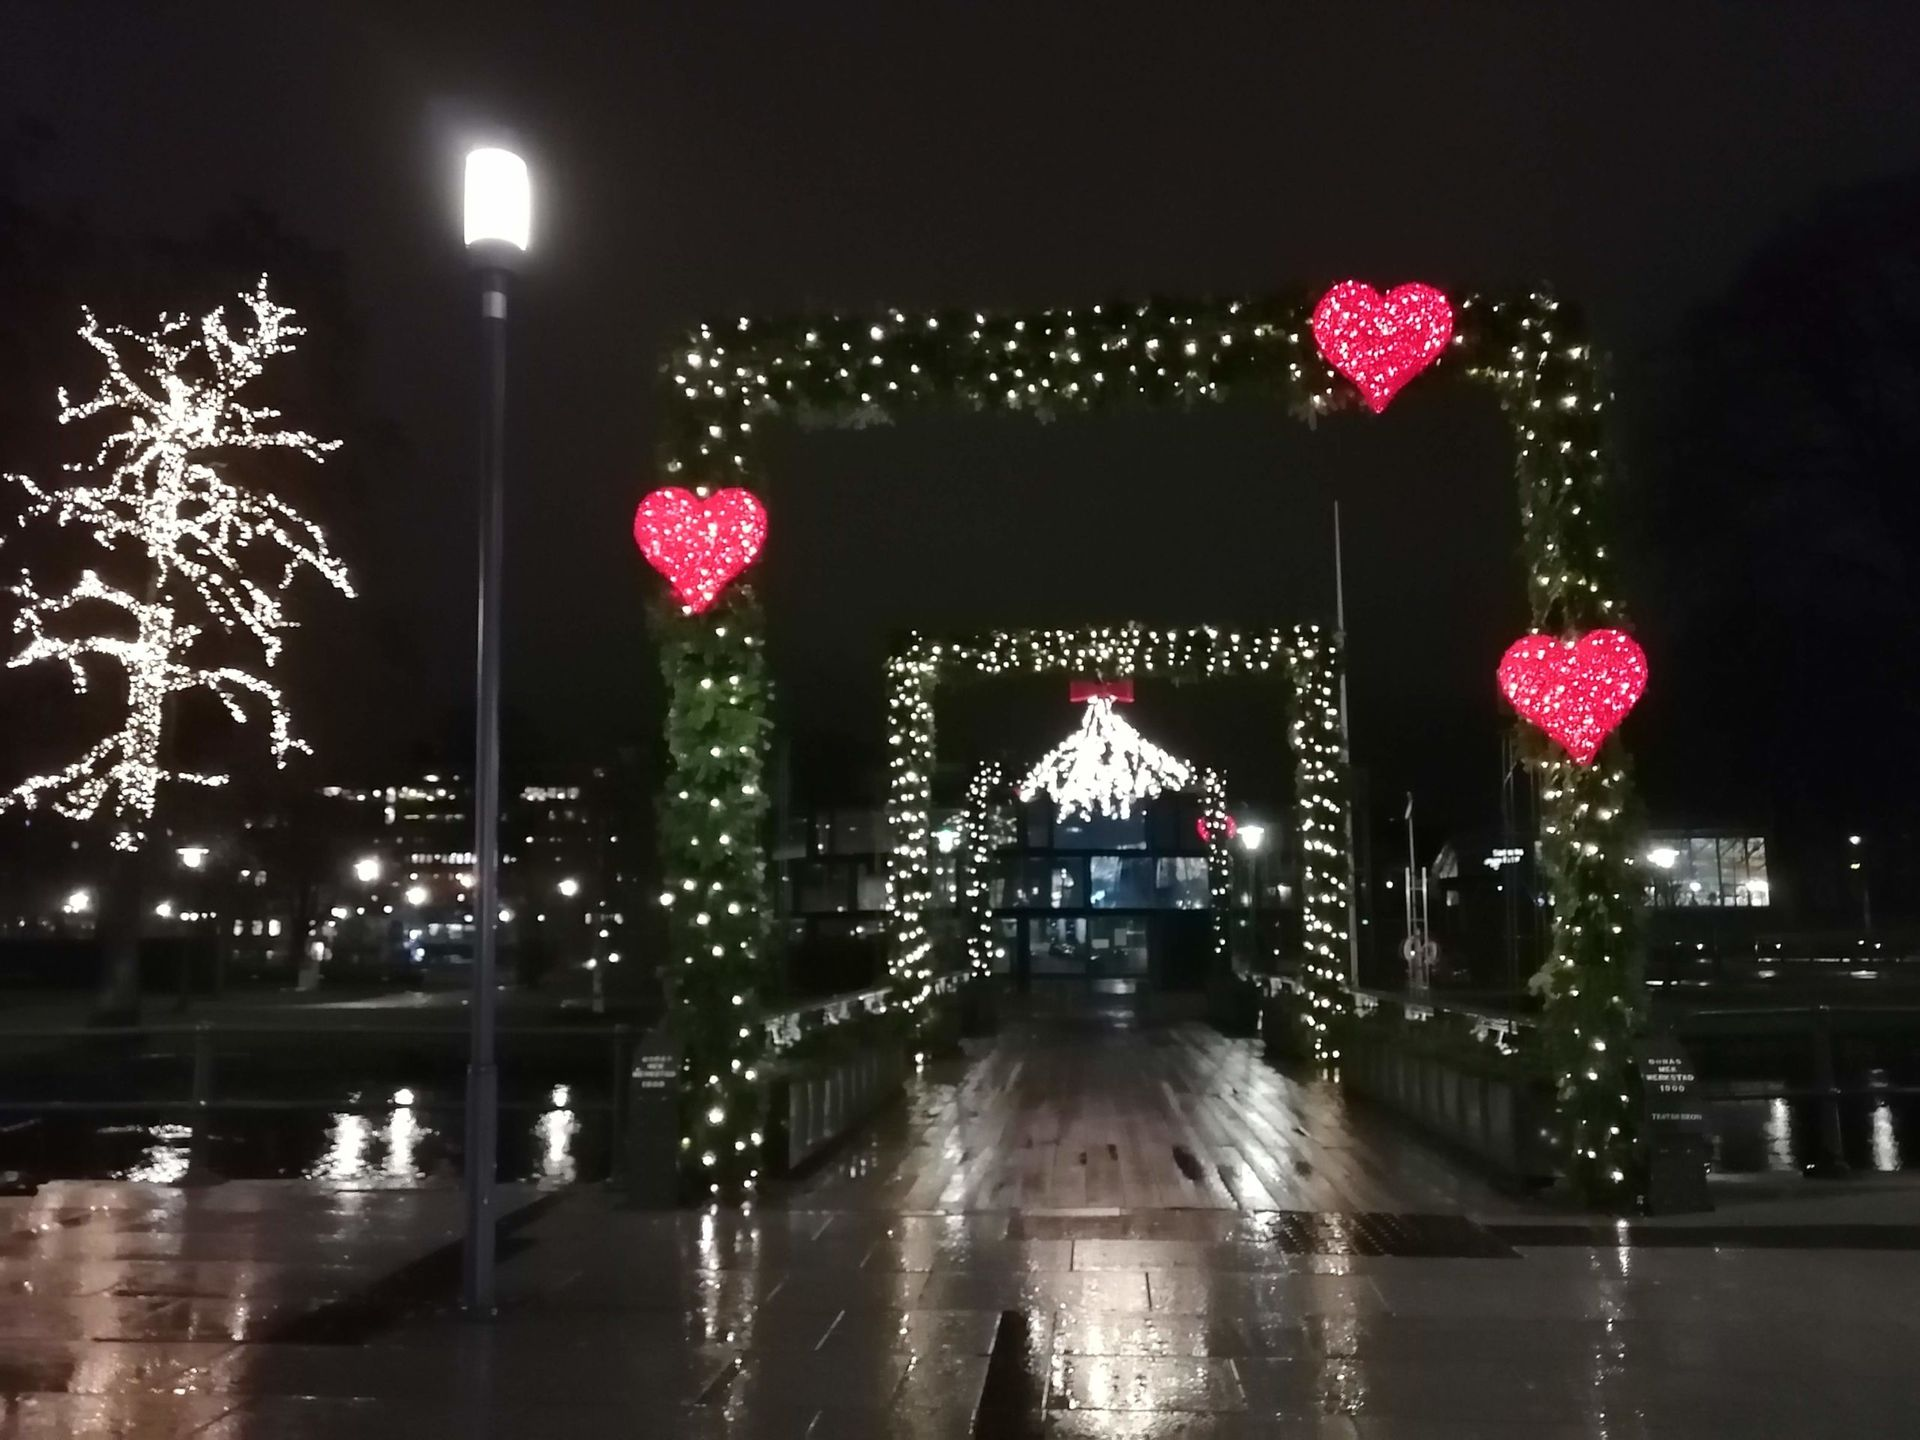 Light display around arched hedges, with bright red hearts and a tree full of lights in the background